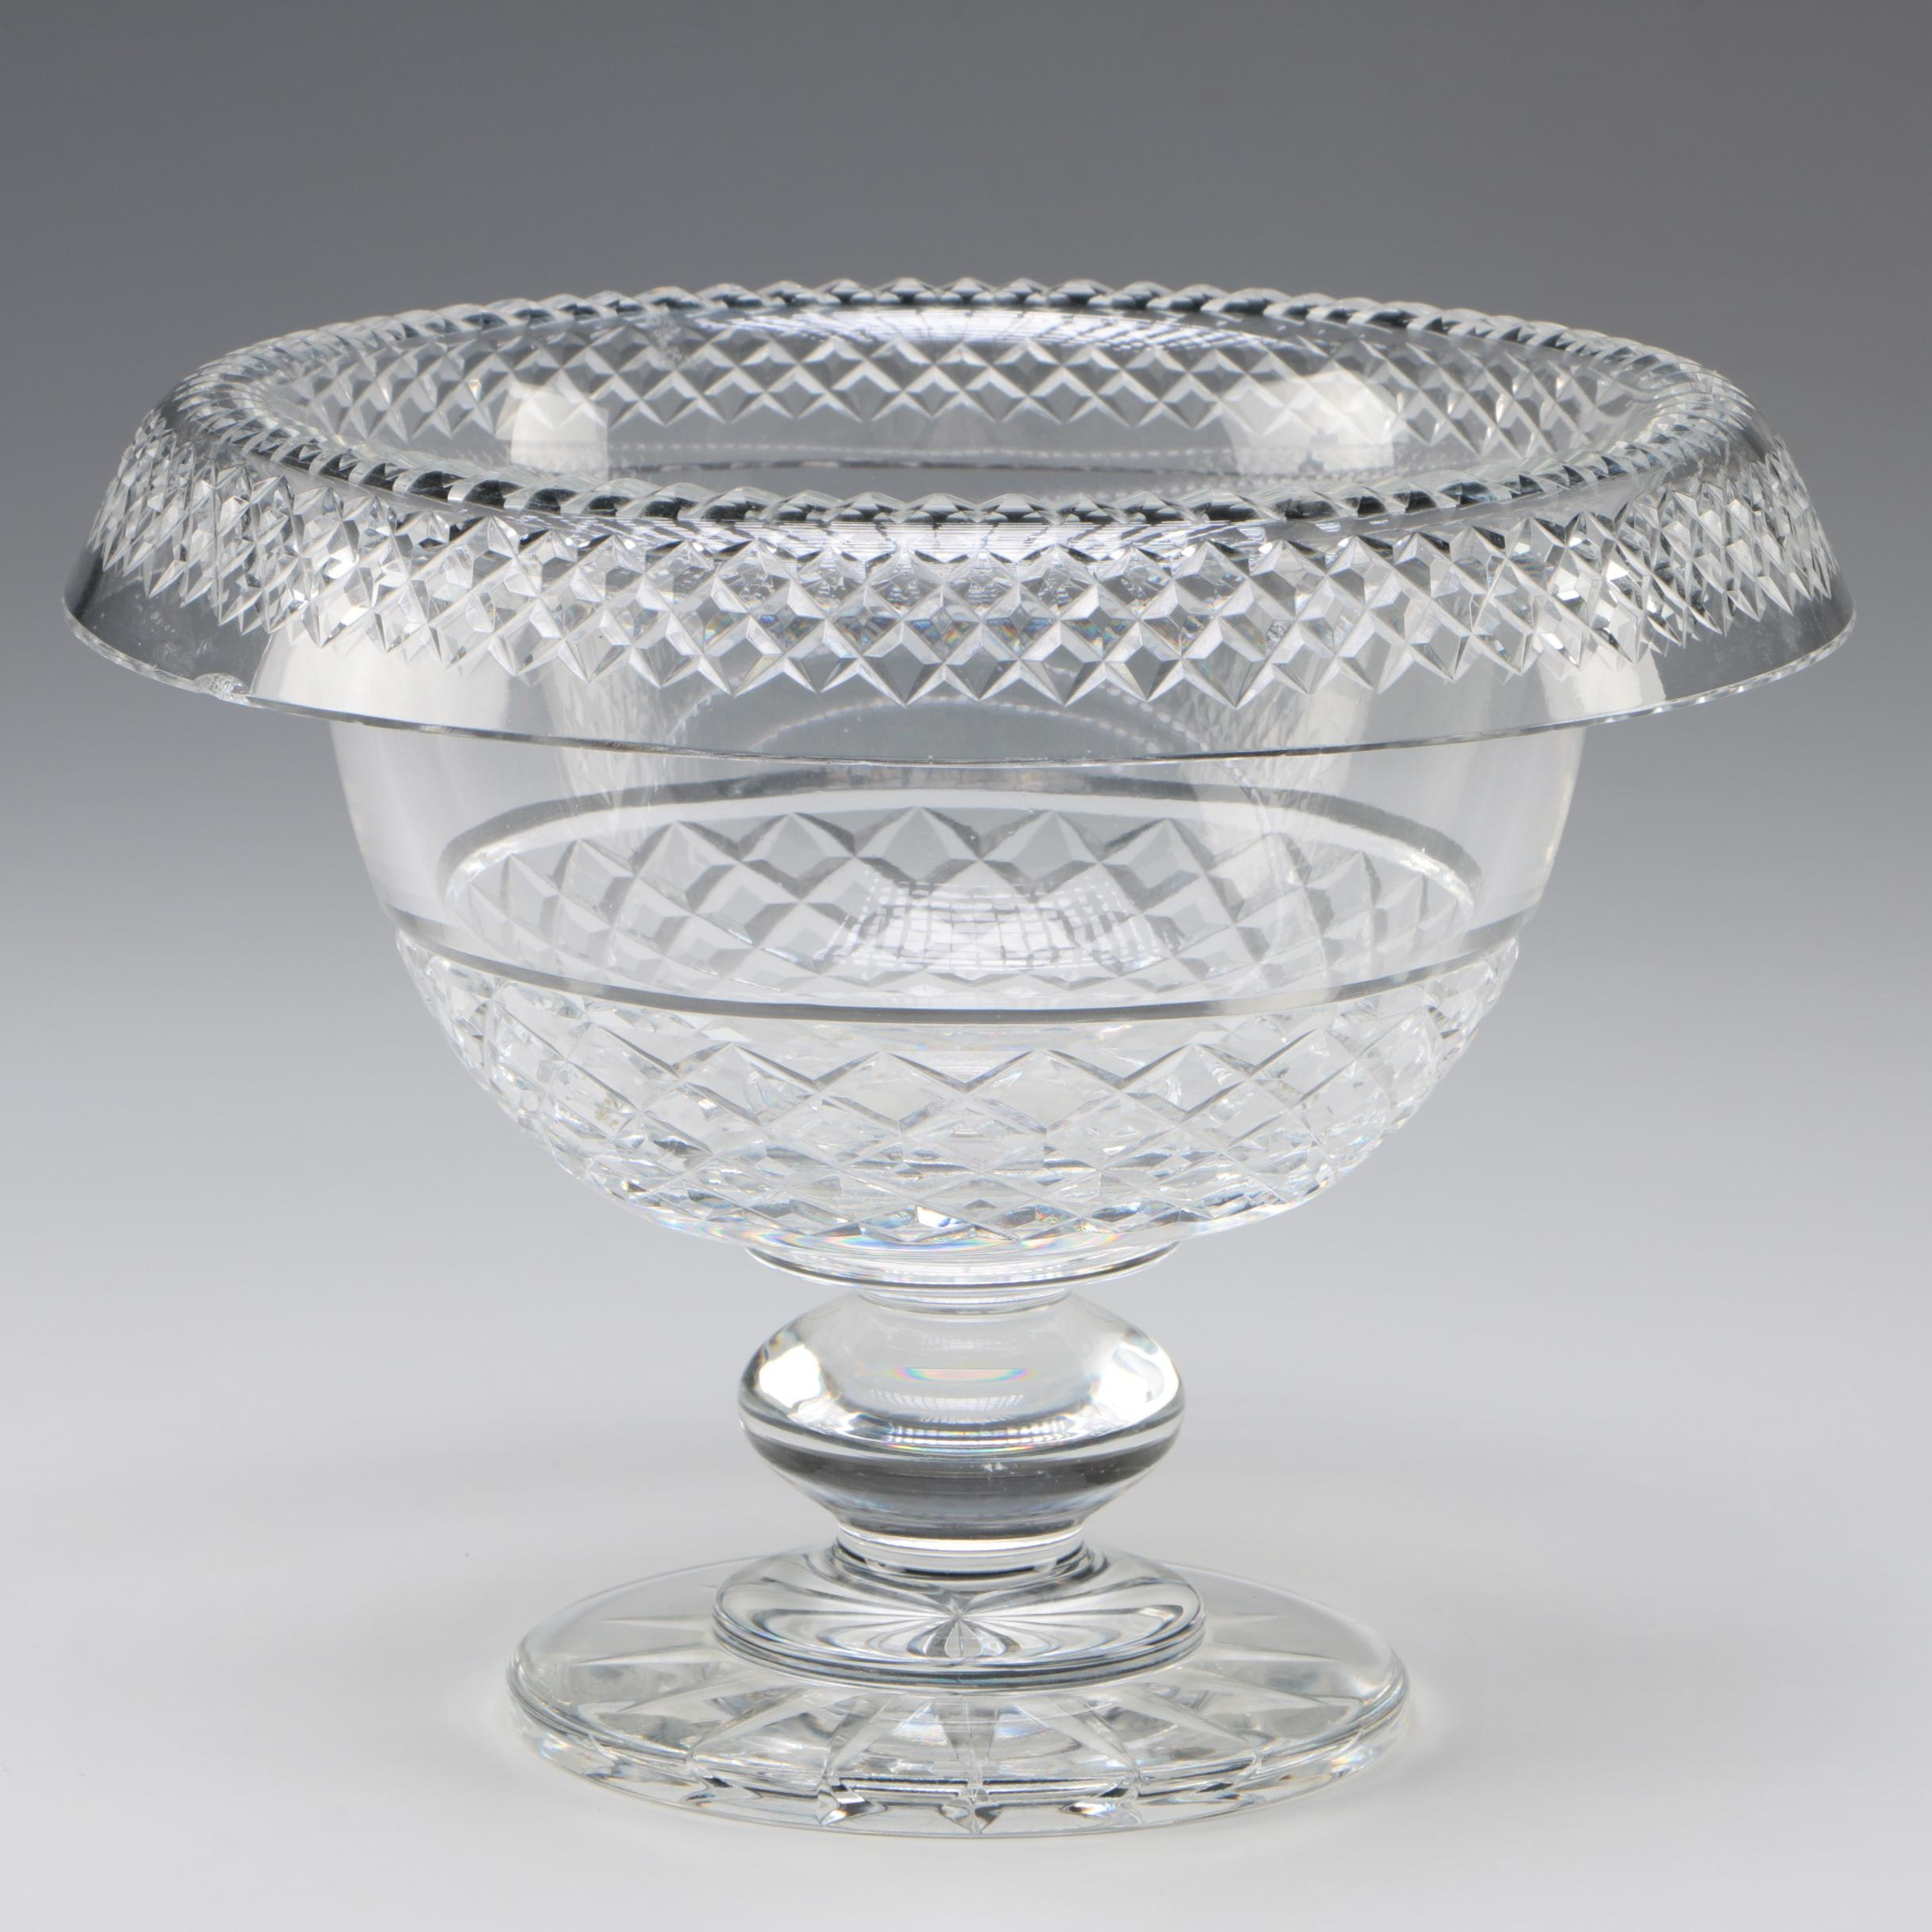 Waterford Crystal Footed Centerpiece Bowl with Rolled Rim